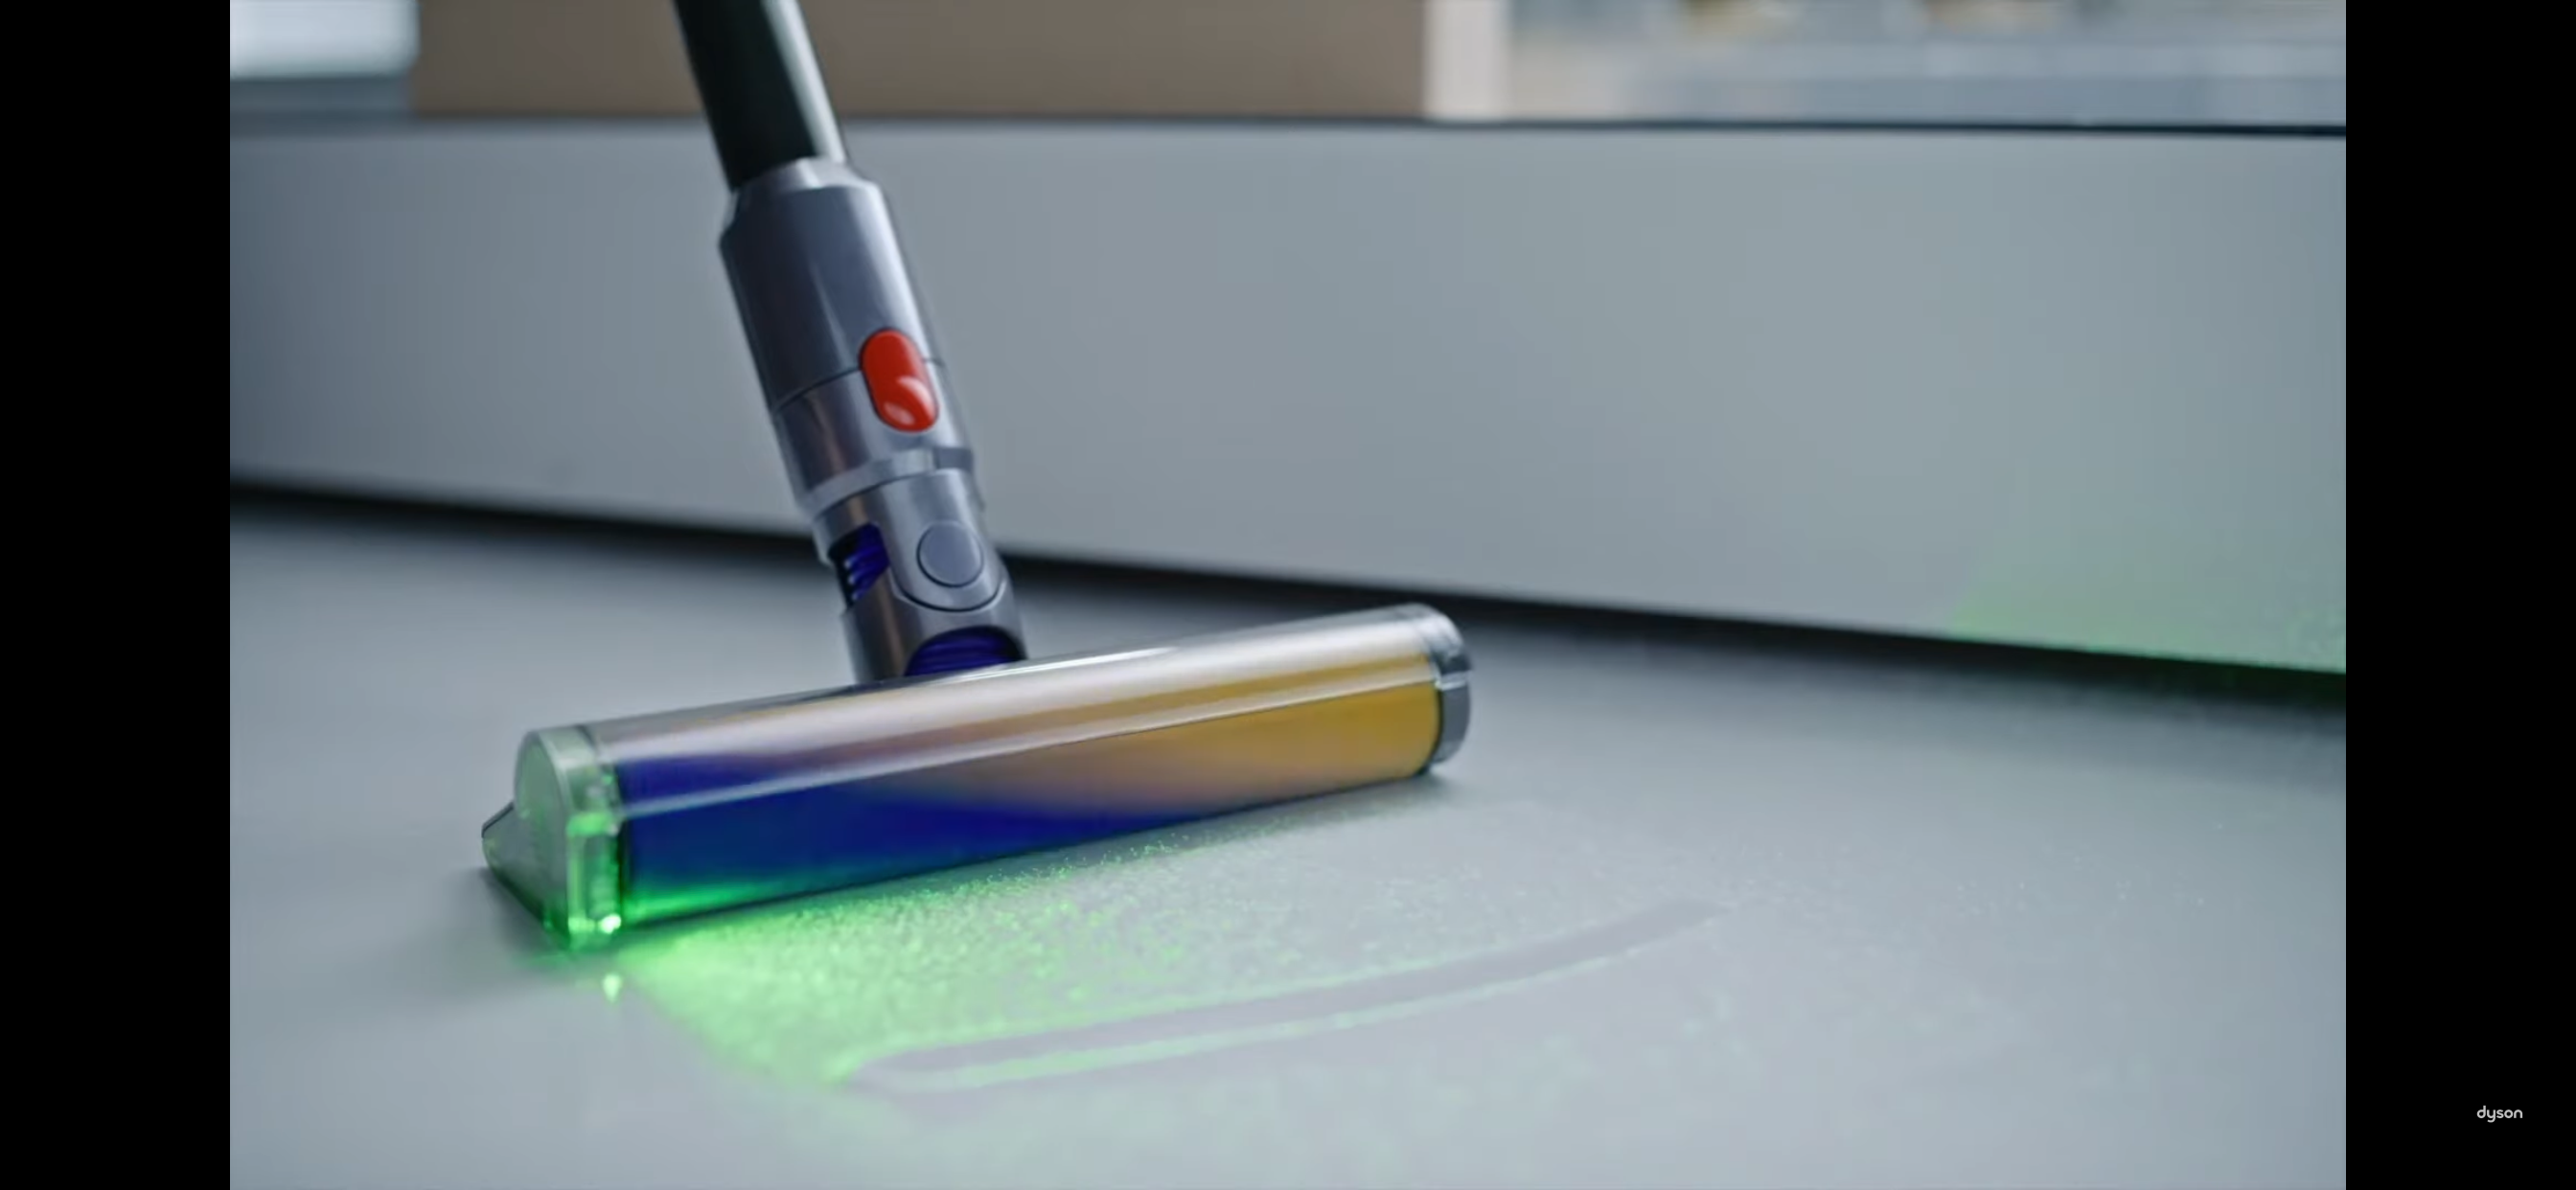 Dyson vacuum cleaner with carbon bristles and laser projector